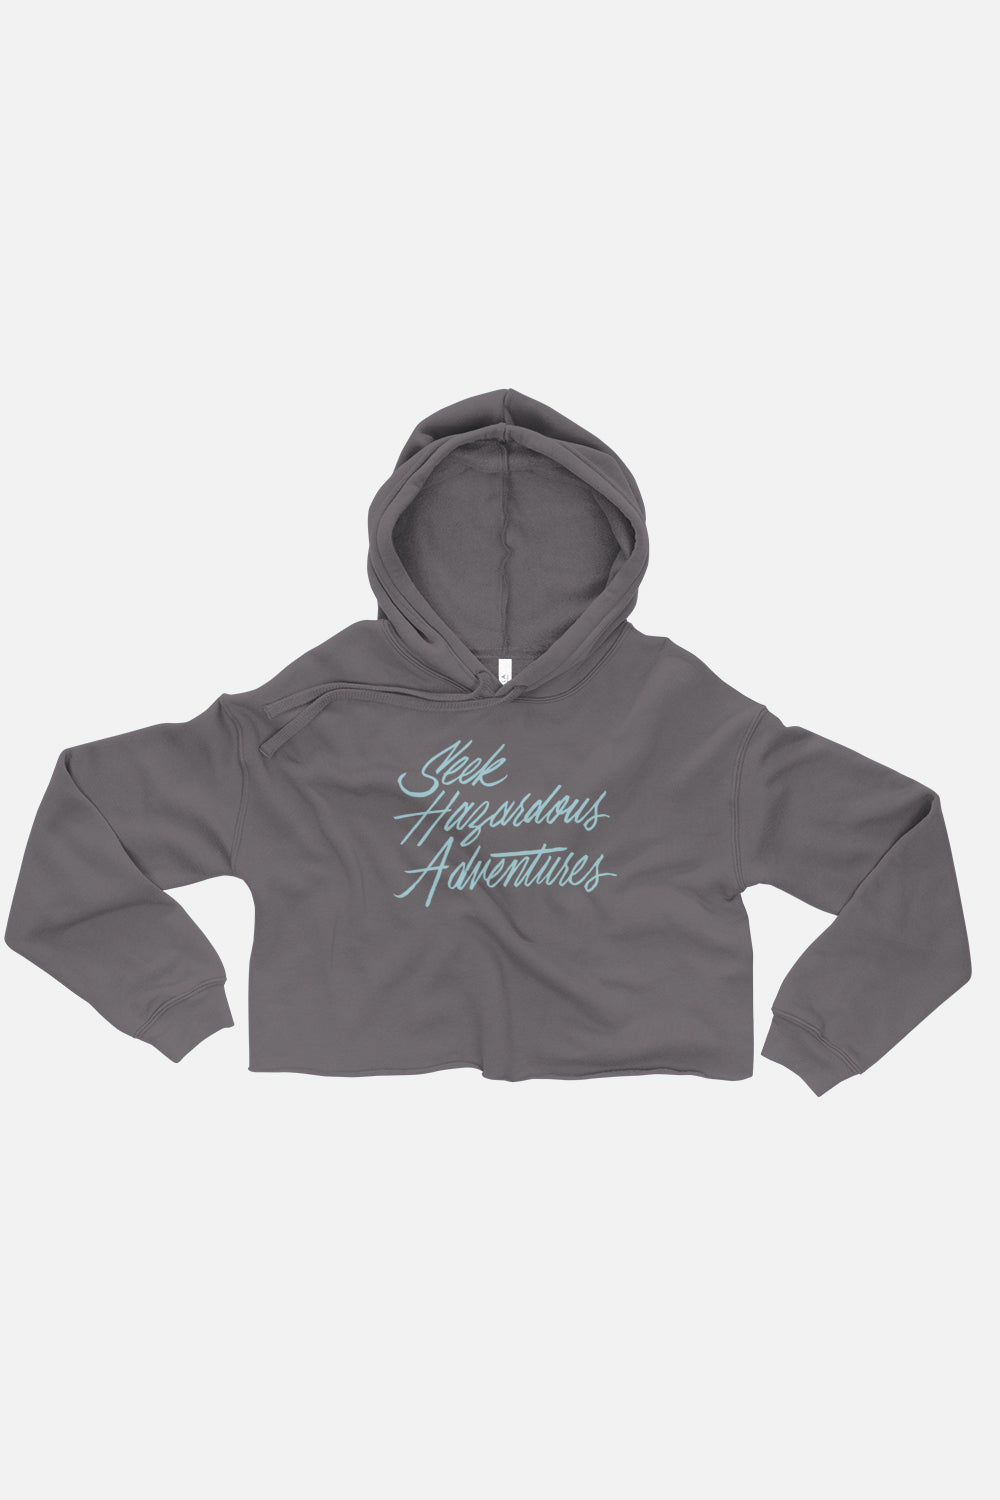 Seek Hazardous Adventures Fitted Crop Hoodie